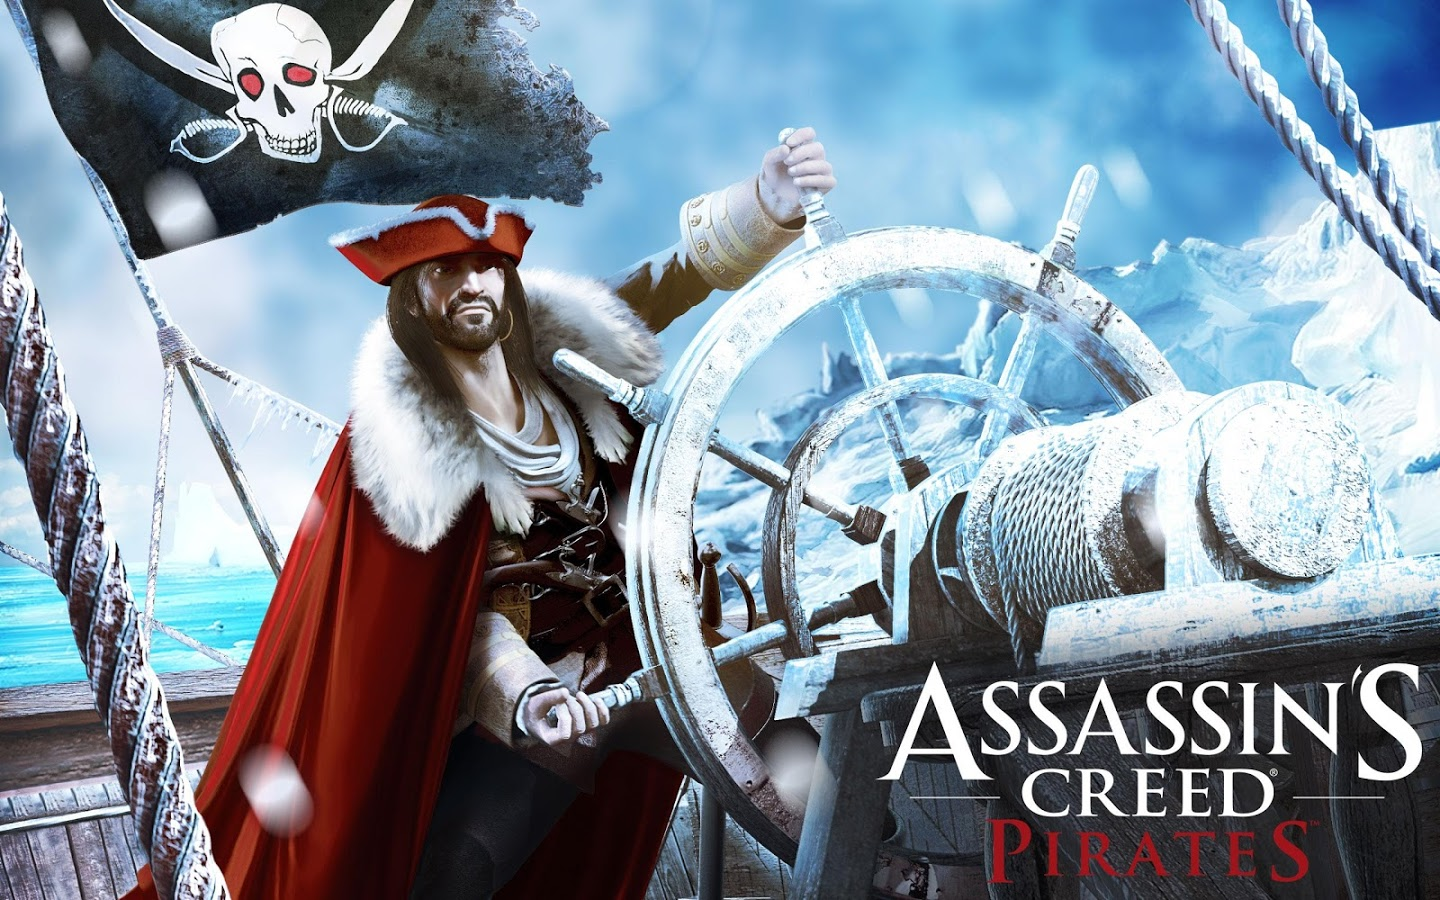 Assassin's Creed Pirates 9